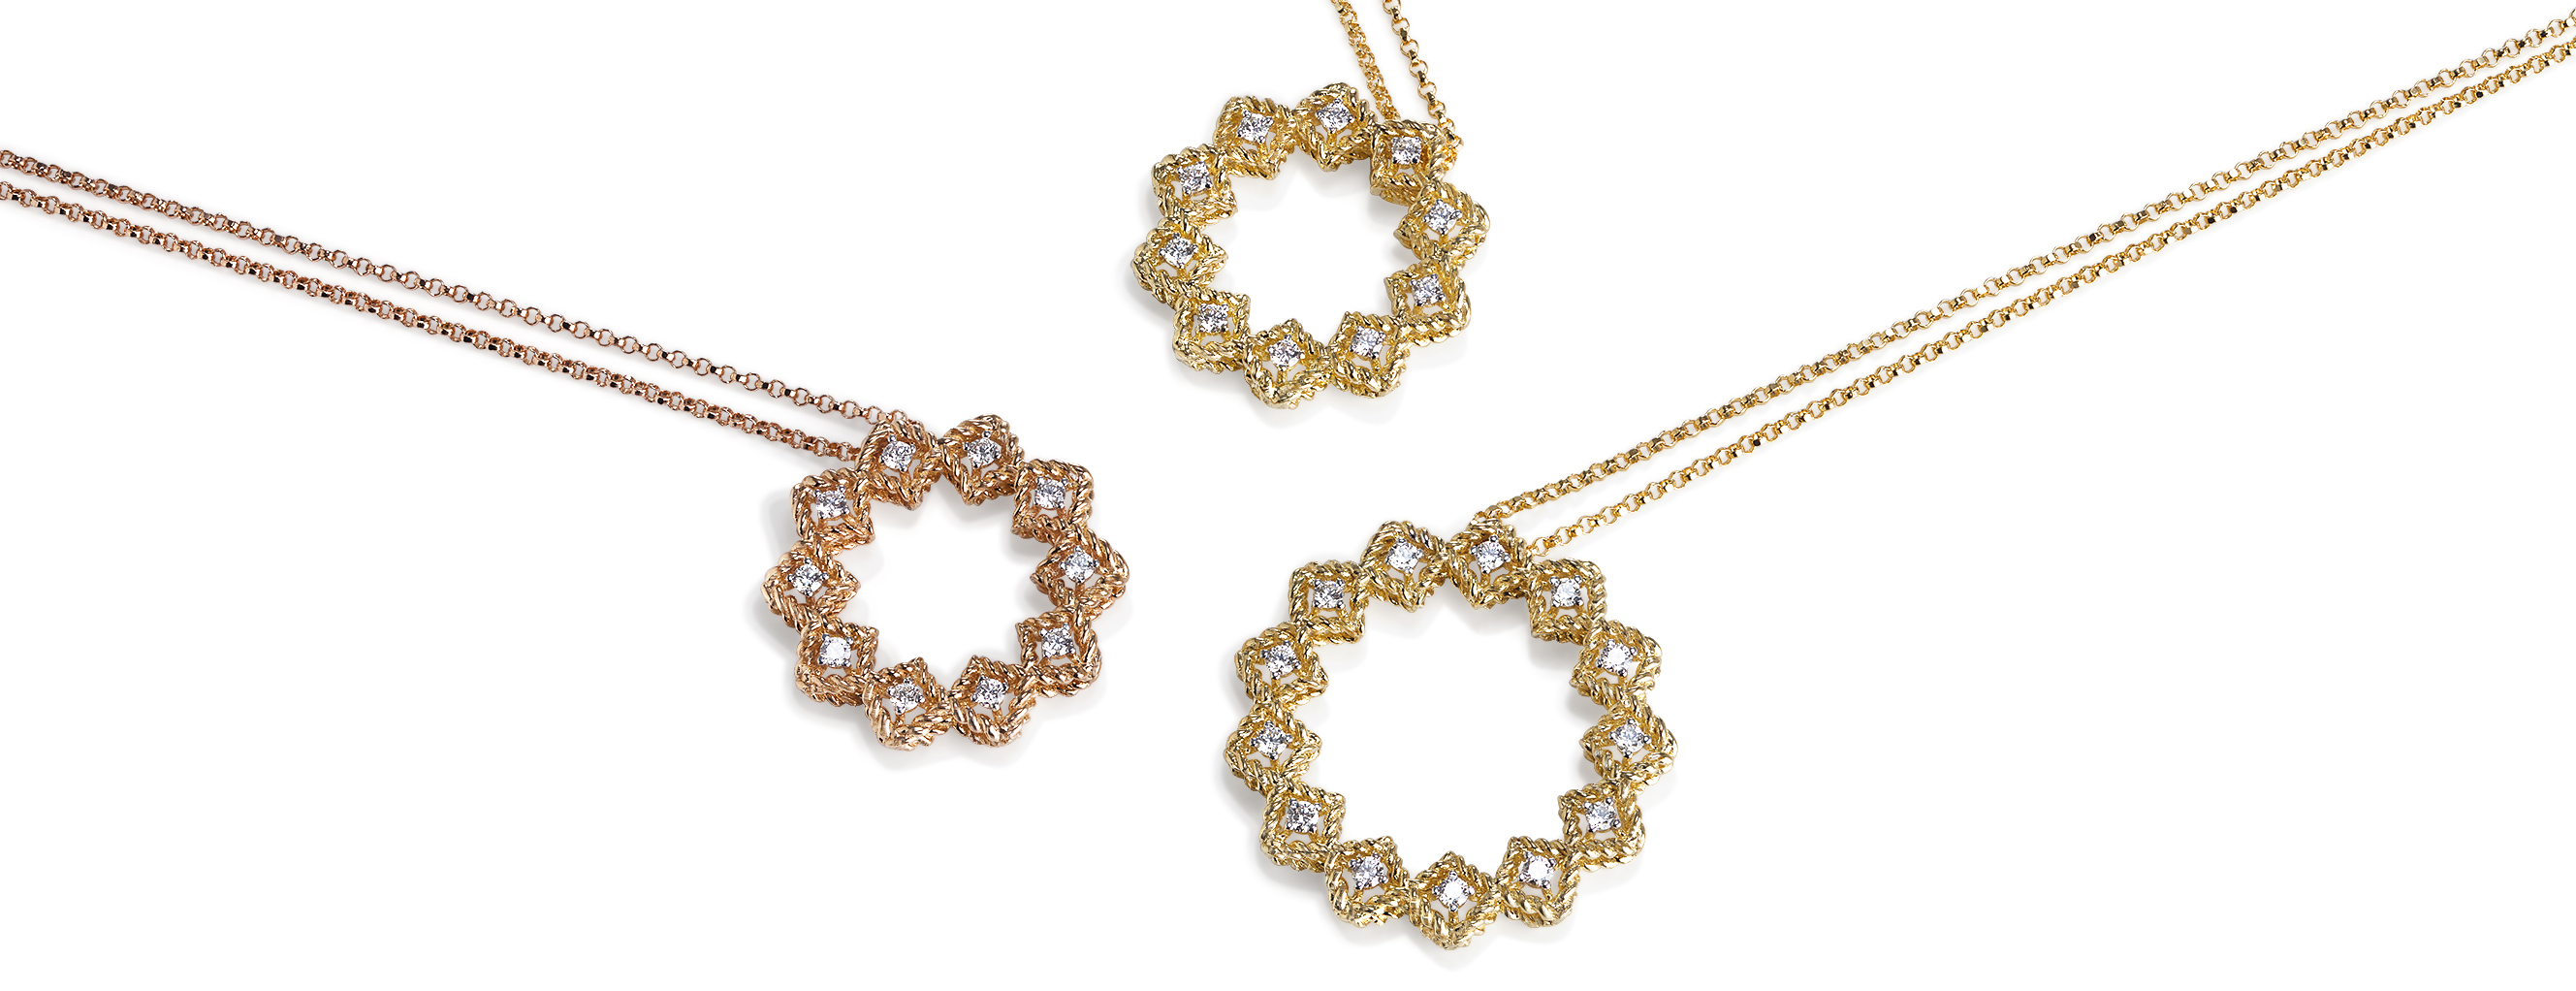 Roberto Coin woven rose and yellow gold and diamond Roman Barocco necklaces